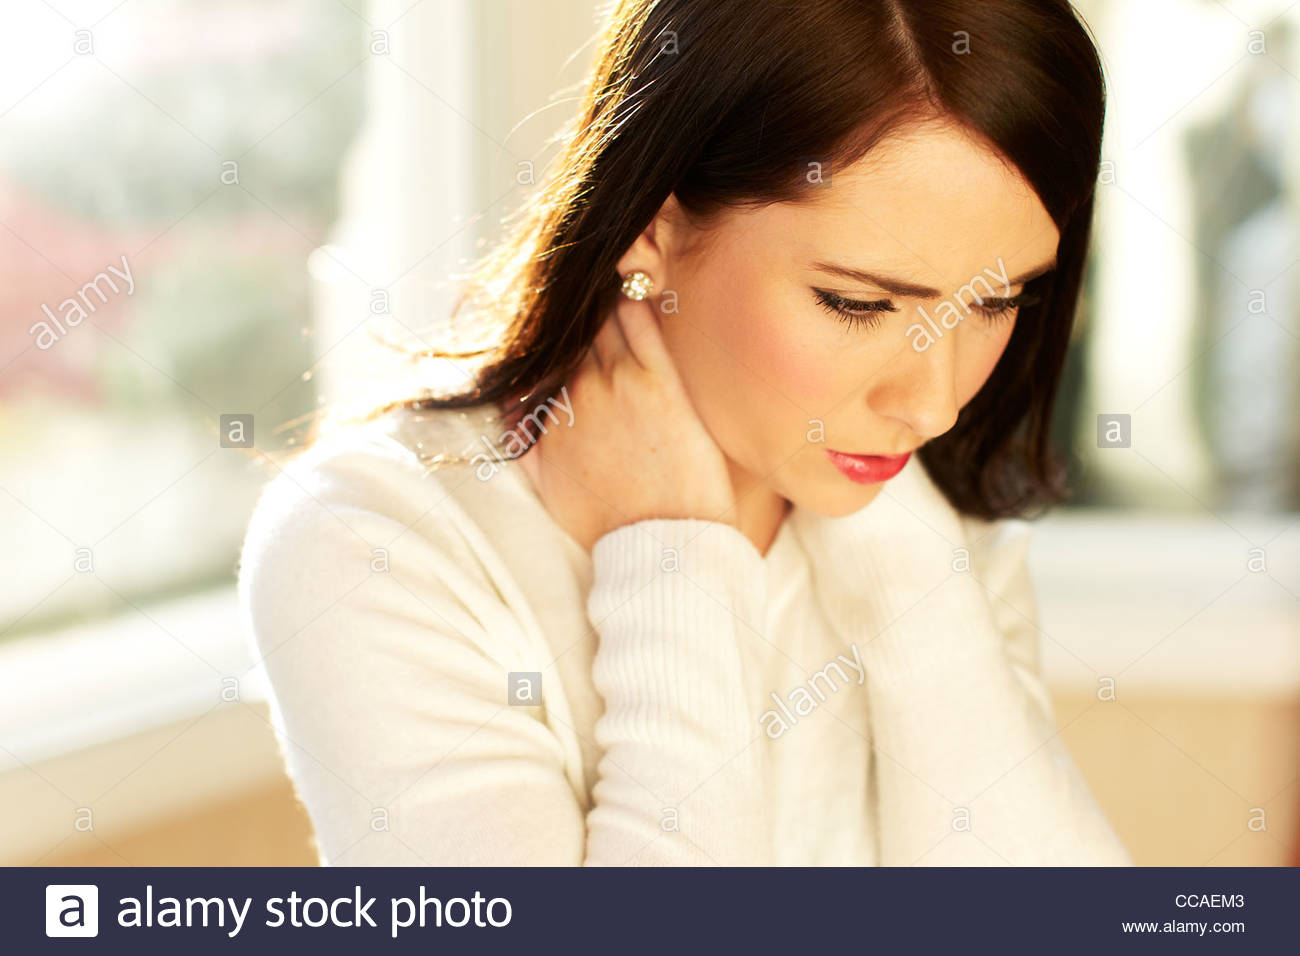 Girl massaging neck - Stock Image